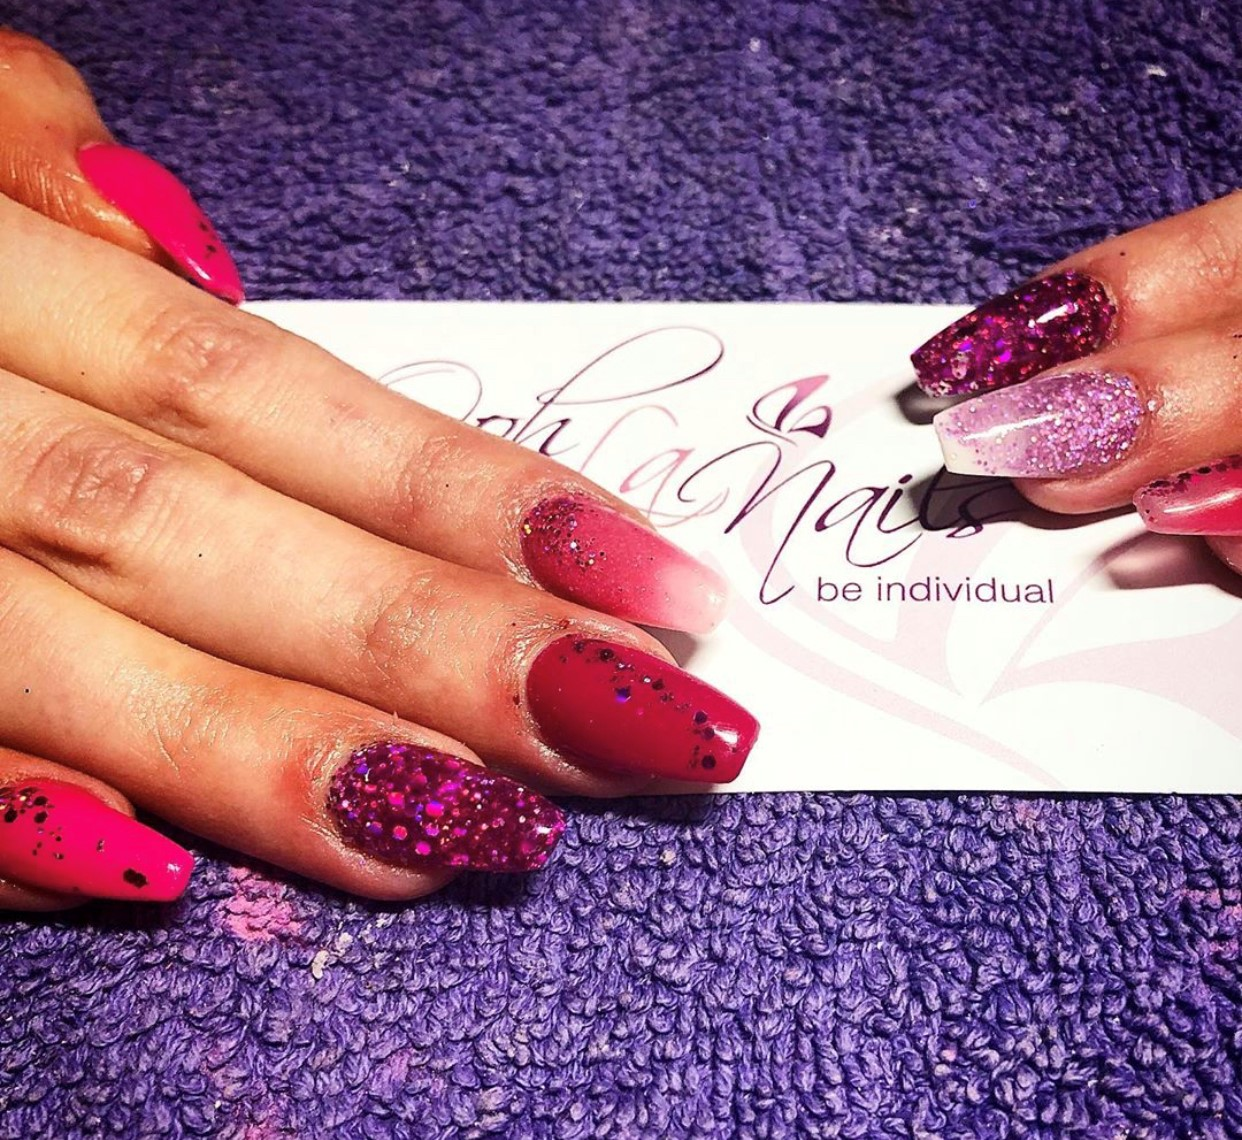 Pink sculpted acrylic nails